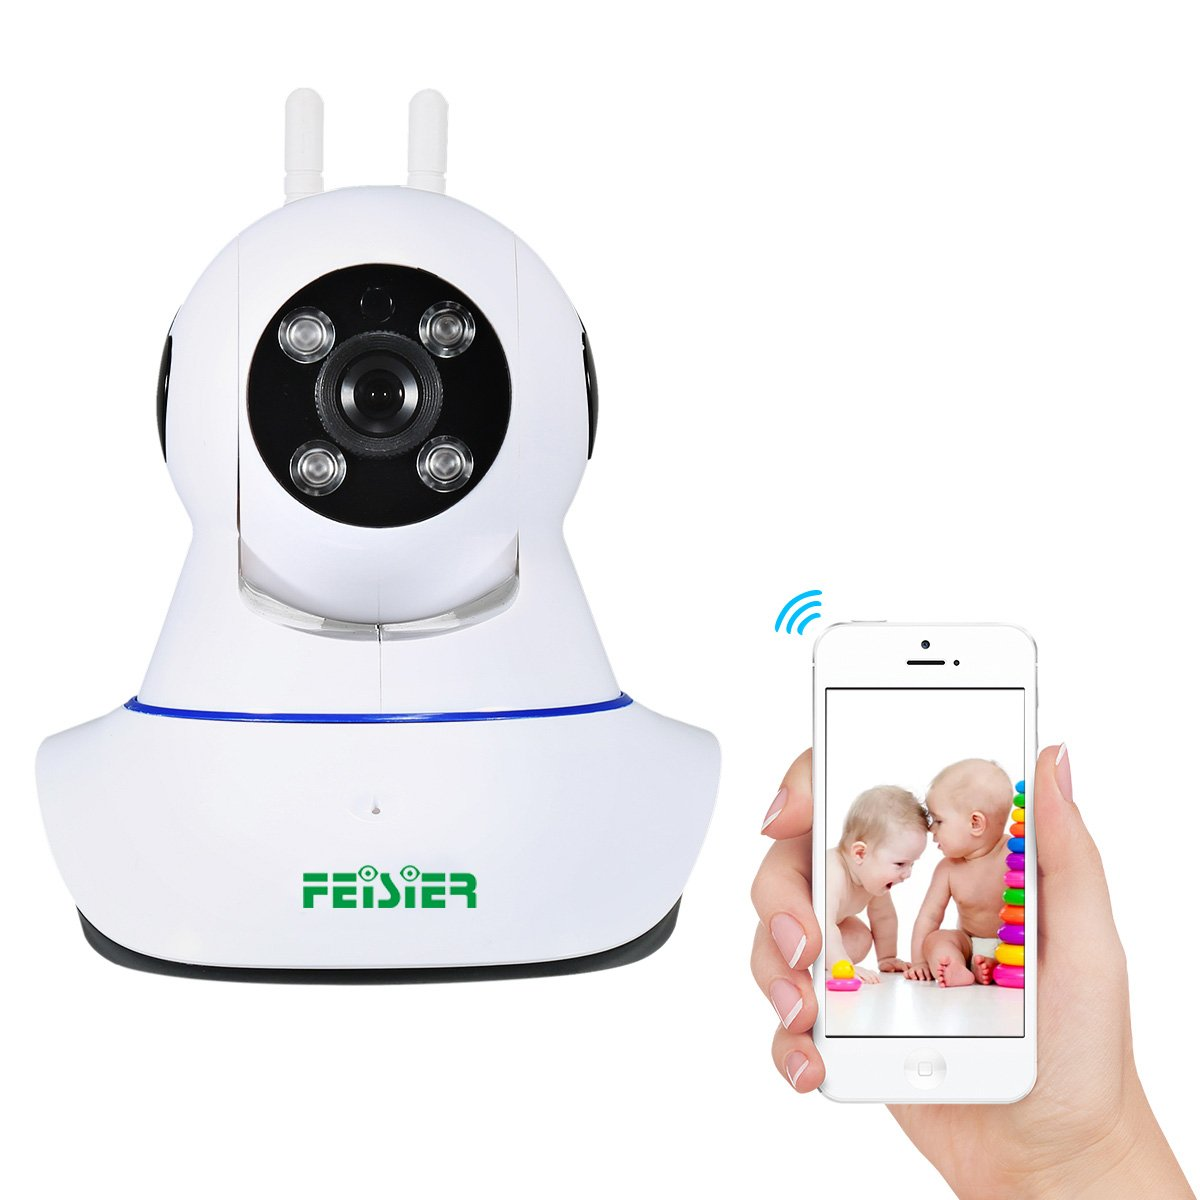 Wireless Security Camera,FEISIER 960P HD Home WiFi Wireless IP Indoor Security Surveillance Camera System with Motion Detection Pan/Tilt,2 Way Audio and Night Vision Baby/Elder/ Pet/Nanny Monitor(2 an